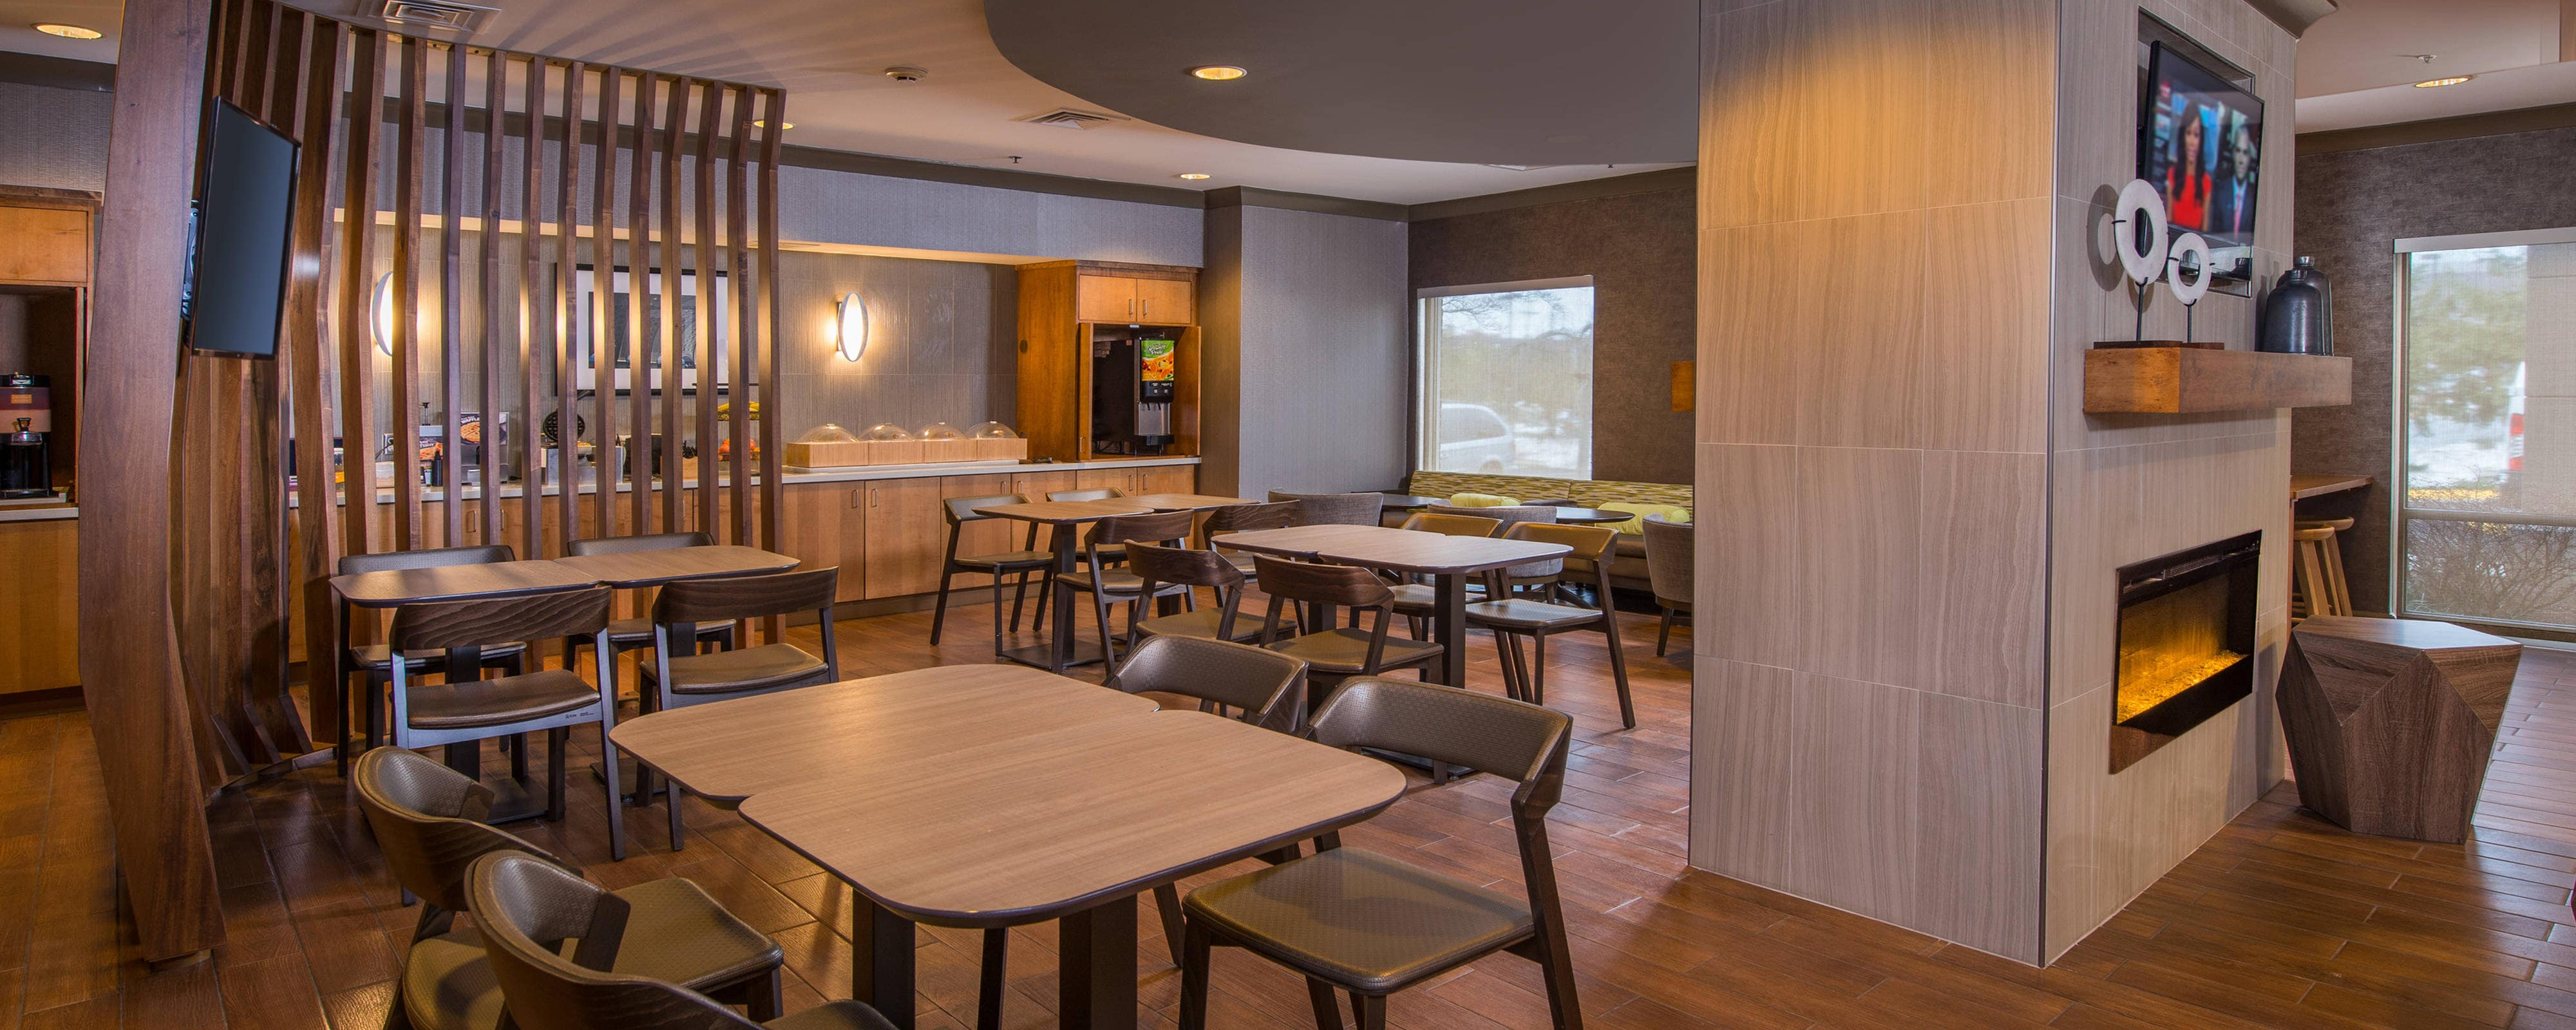 Fabulous Herndon Hotels With Free Breakfast Springhill Suites Download Free Architecture Designs Osuribritishbridgeorg